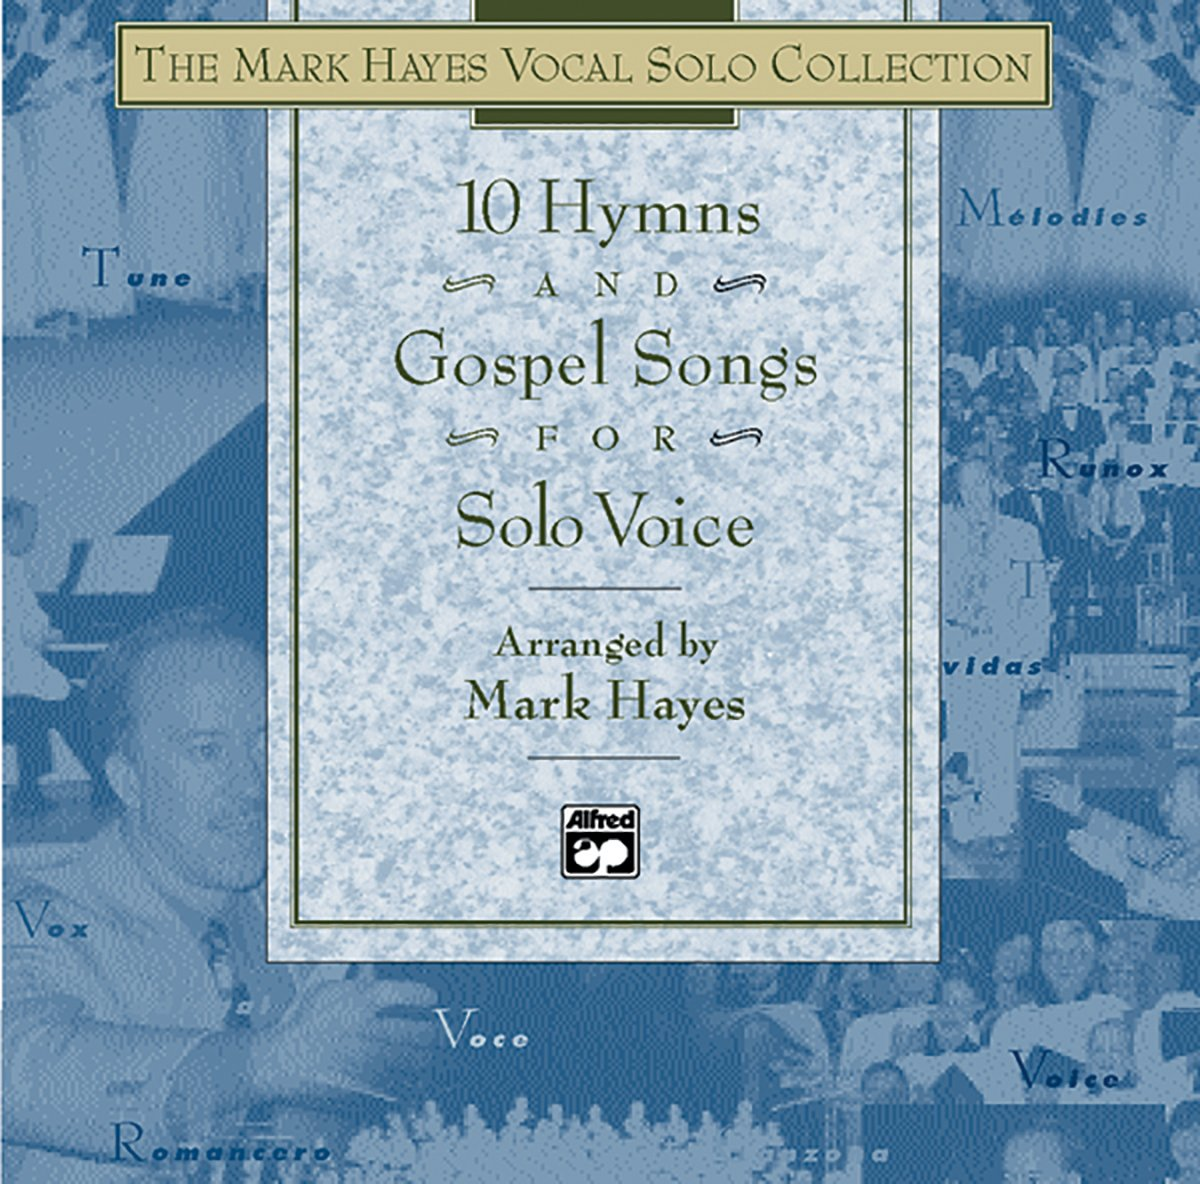 The Mark Hayes Vocal Solo Collection - 10 Hymns & Gospel Songs for Solo Voice: Mixed Voicings (CD)